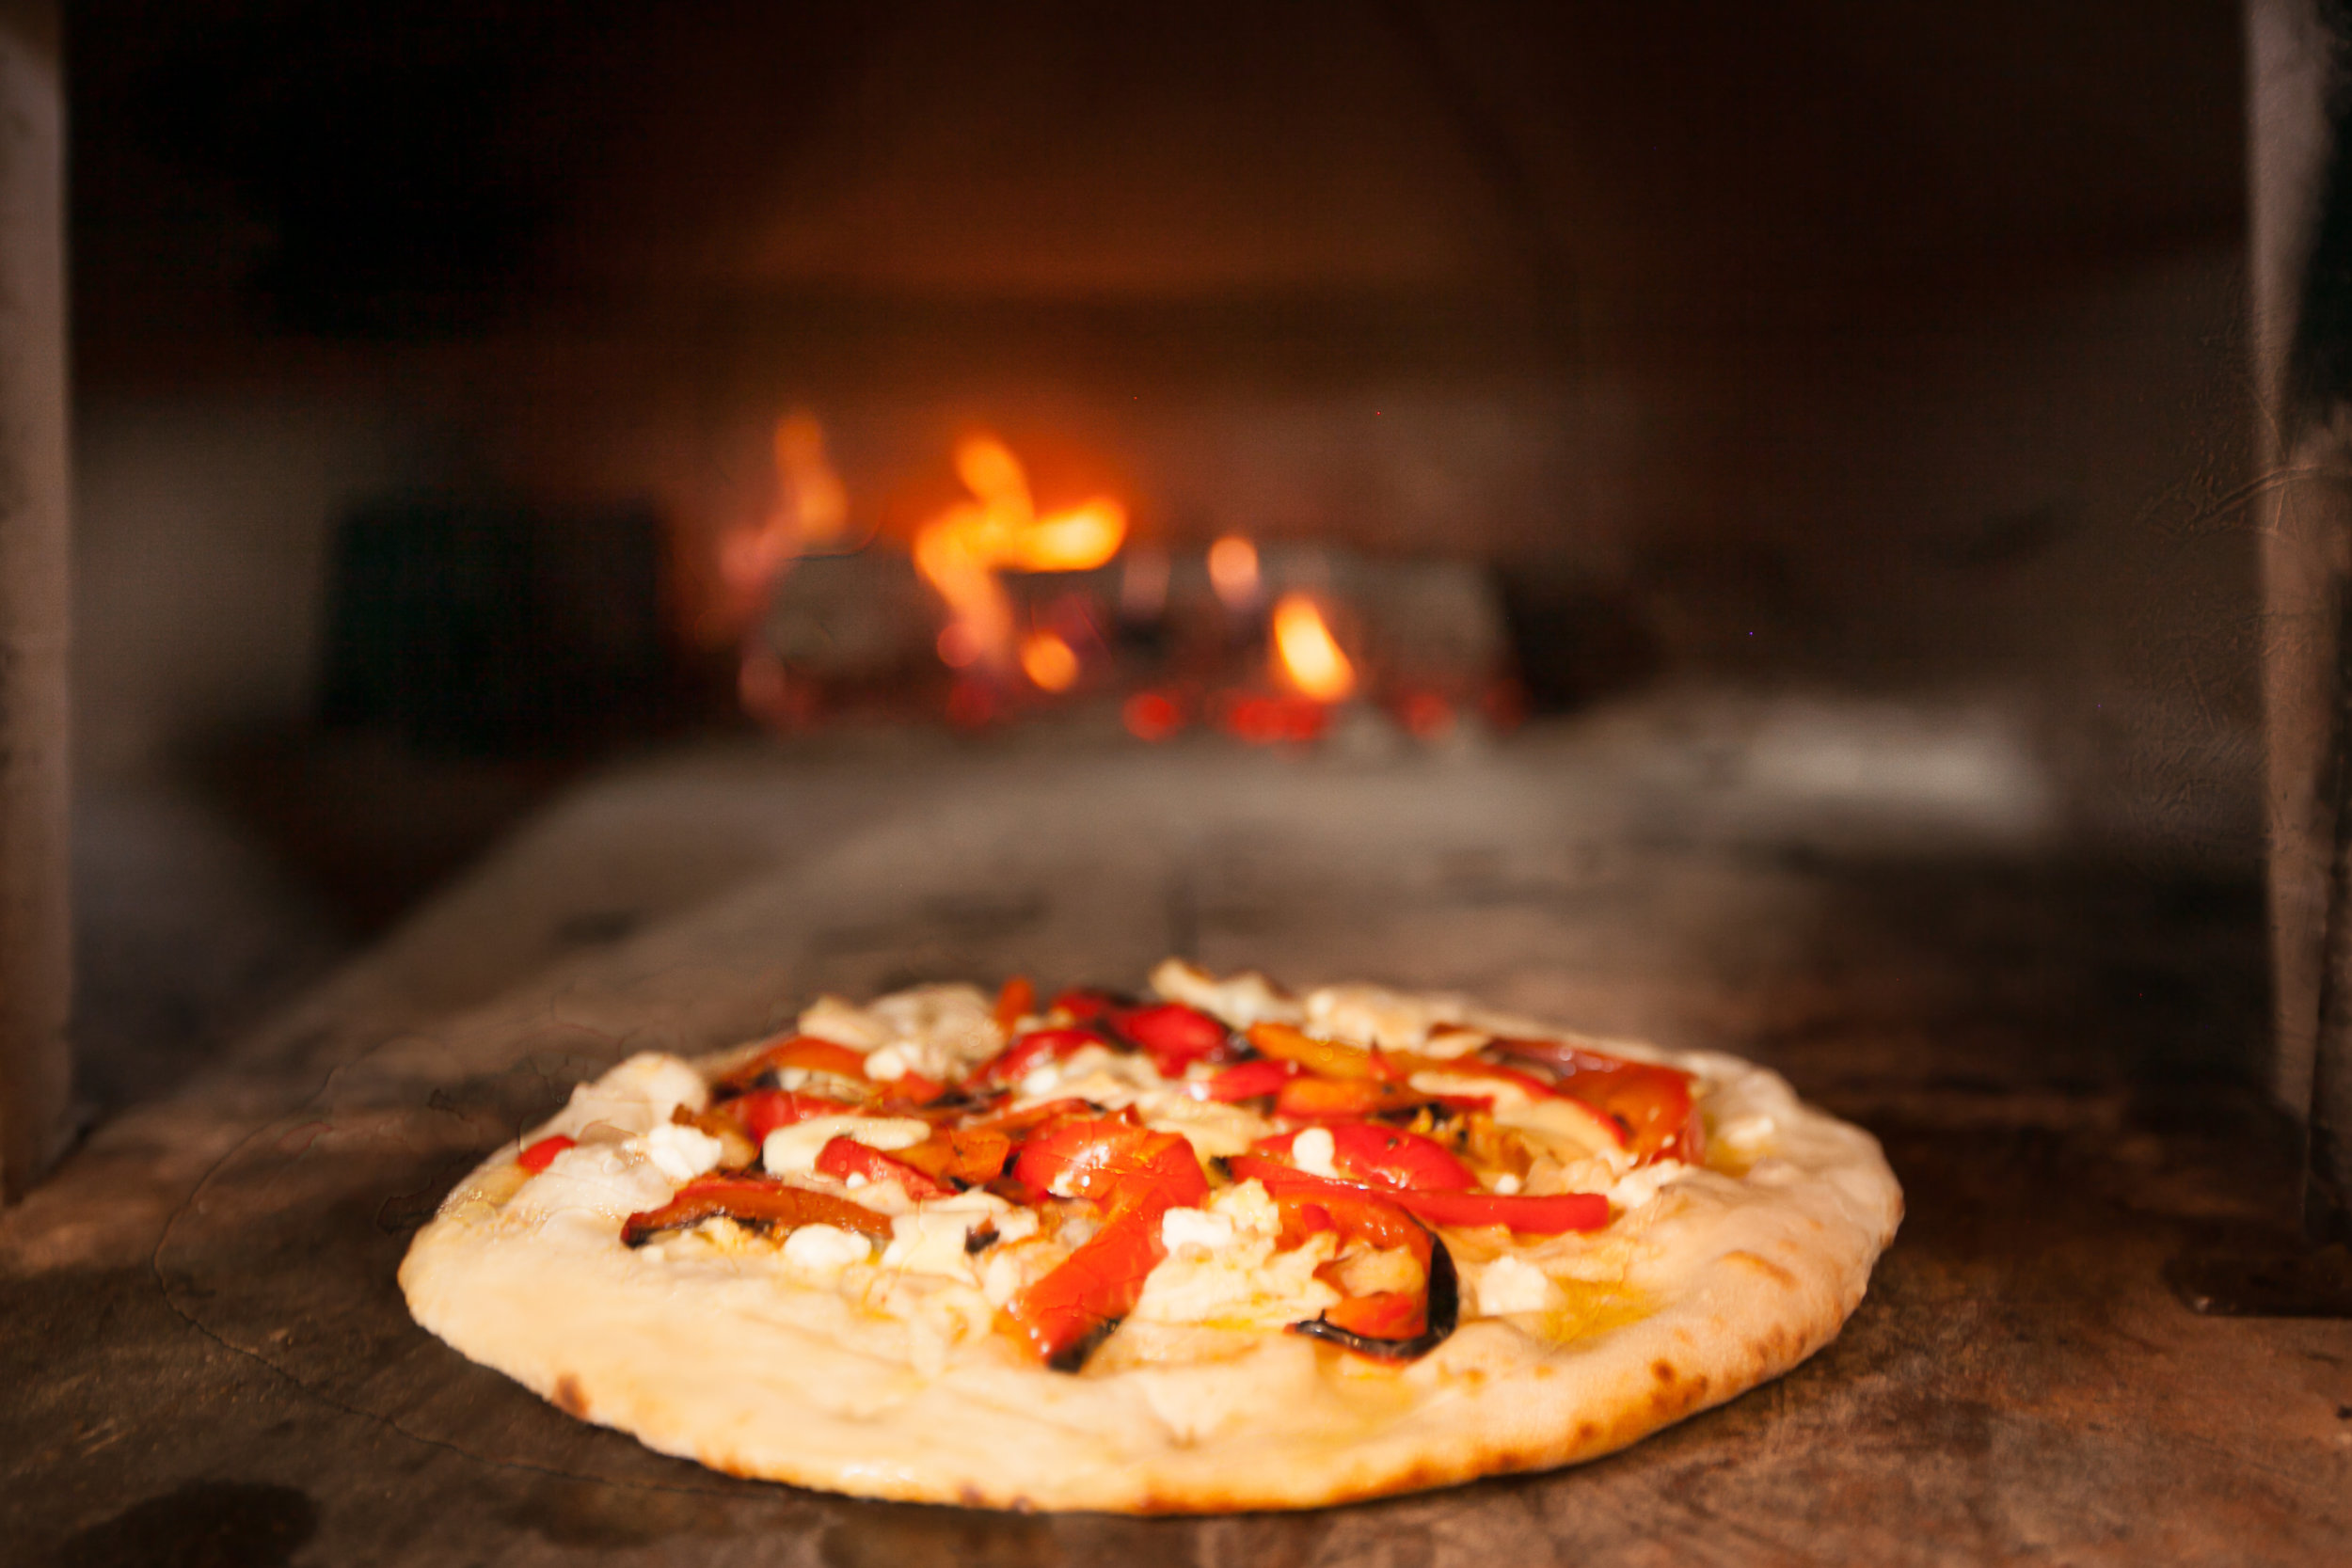 Oven cooked pizza, need I say more.....I did get to sample a piece of this pizza and it was fantastic.